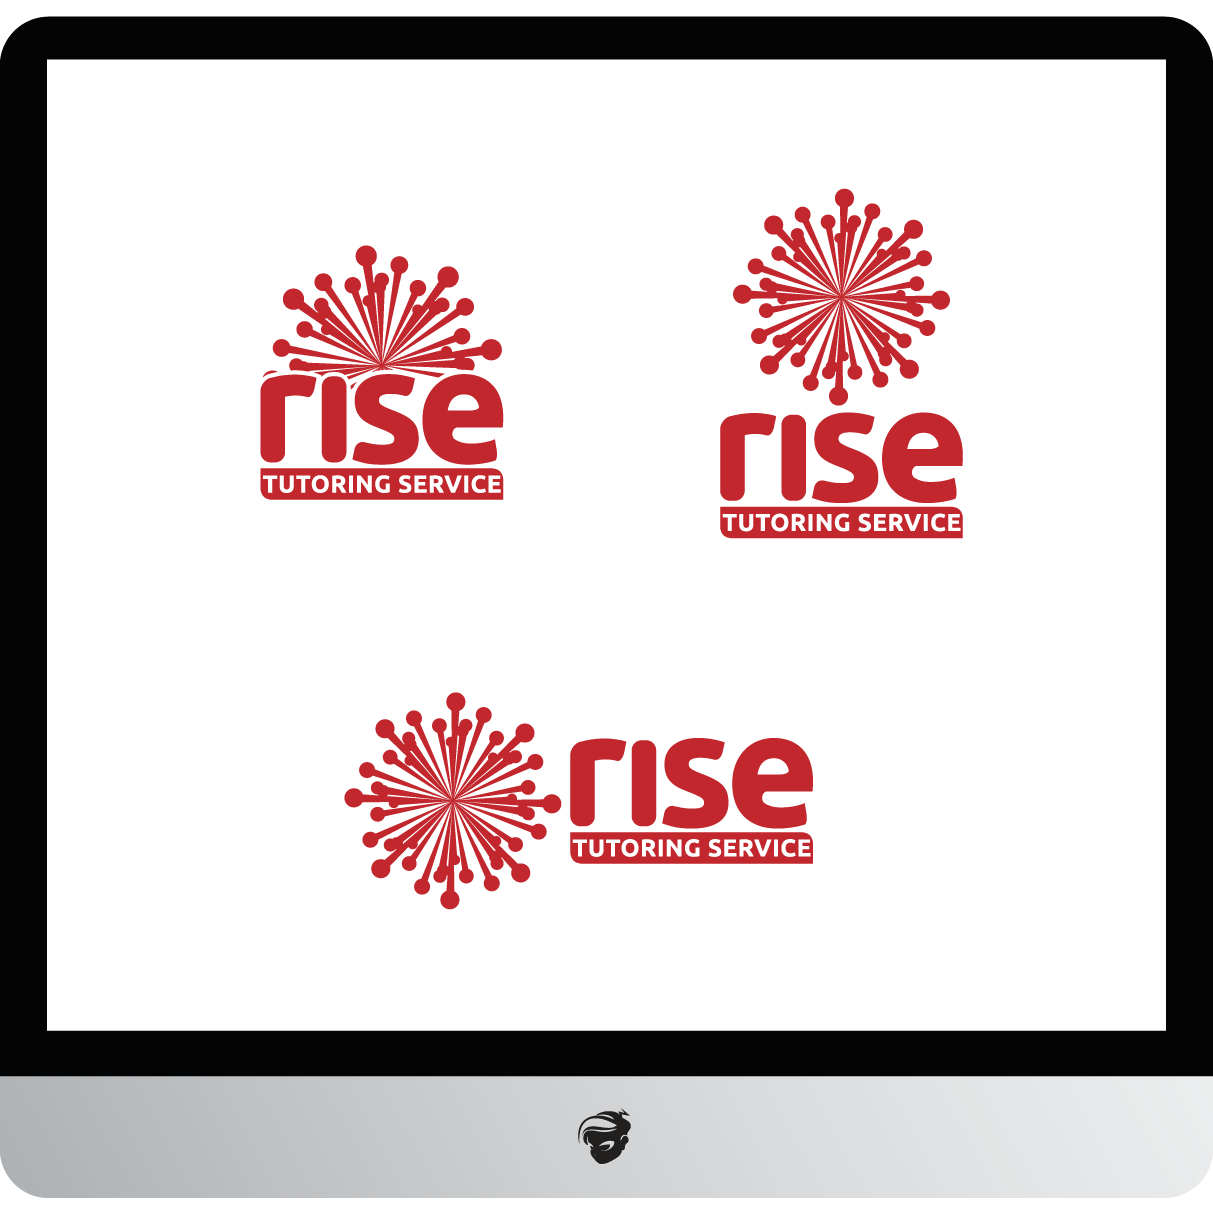 Logo Design by zesthar - Entry No. 229 in the Logo Design Contest Imaginative Logo Design for Rise Tutoring Service.